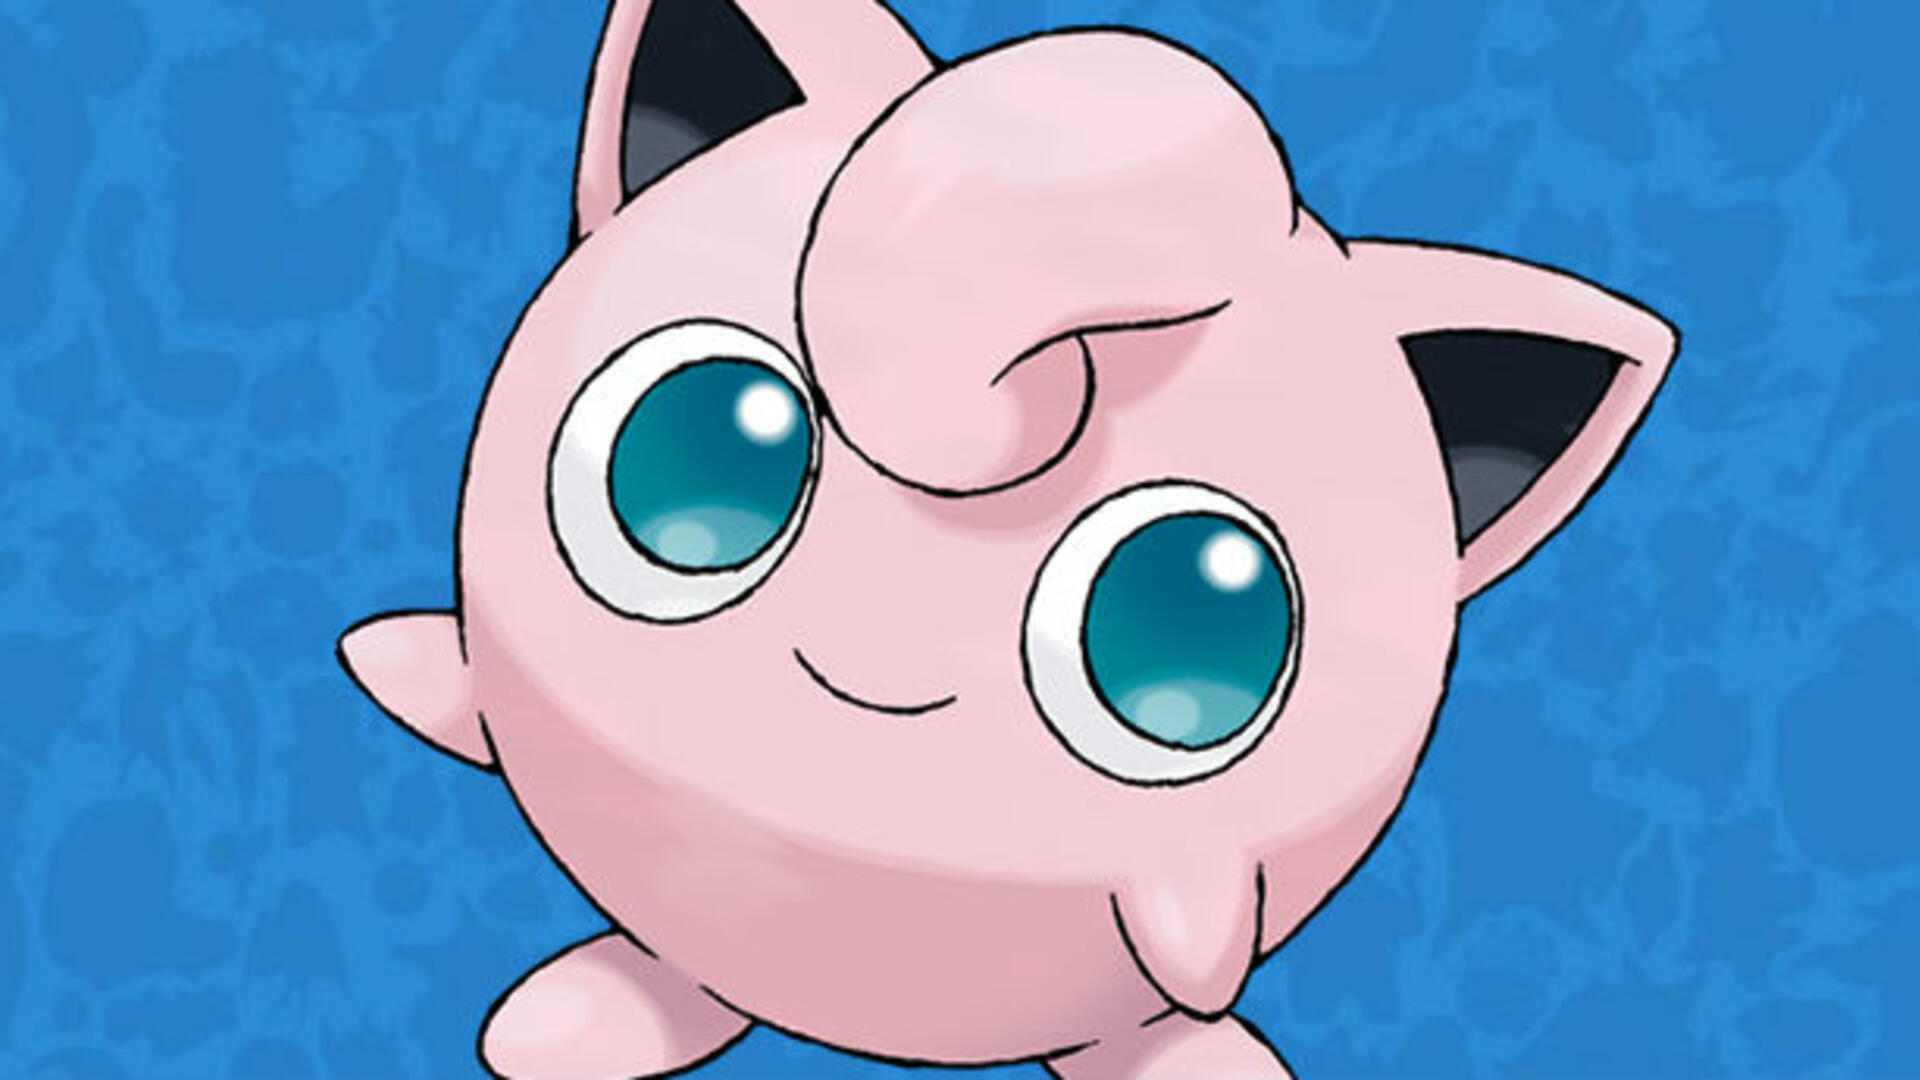 """""""Too Cute to be Successful in the U.S.:"""" Pokemon Developer Junichi Masuda Feared the Cutesy Jigglypuff Would be Rejected by Americans"""